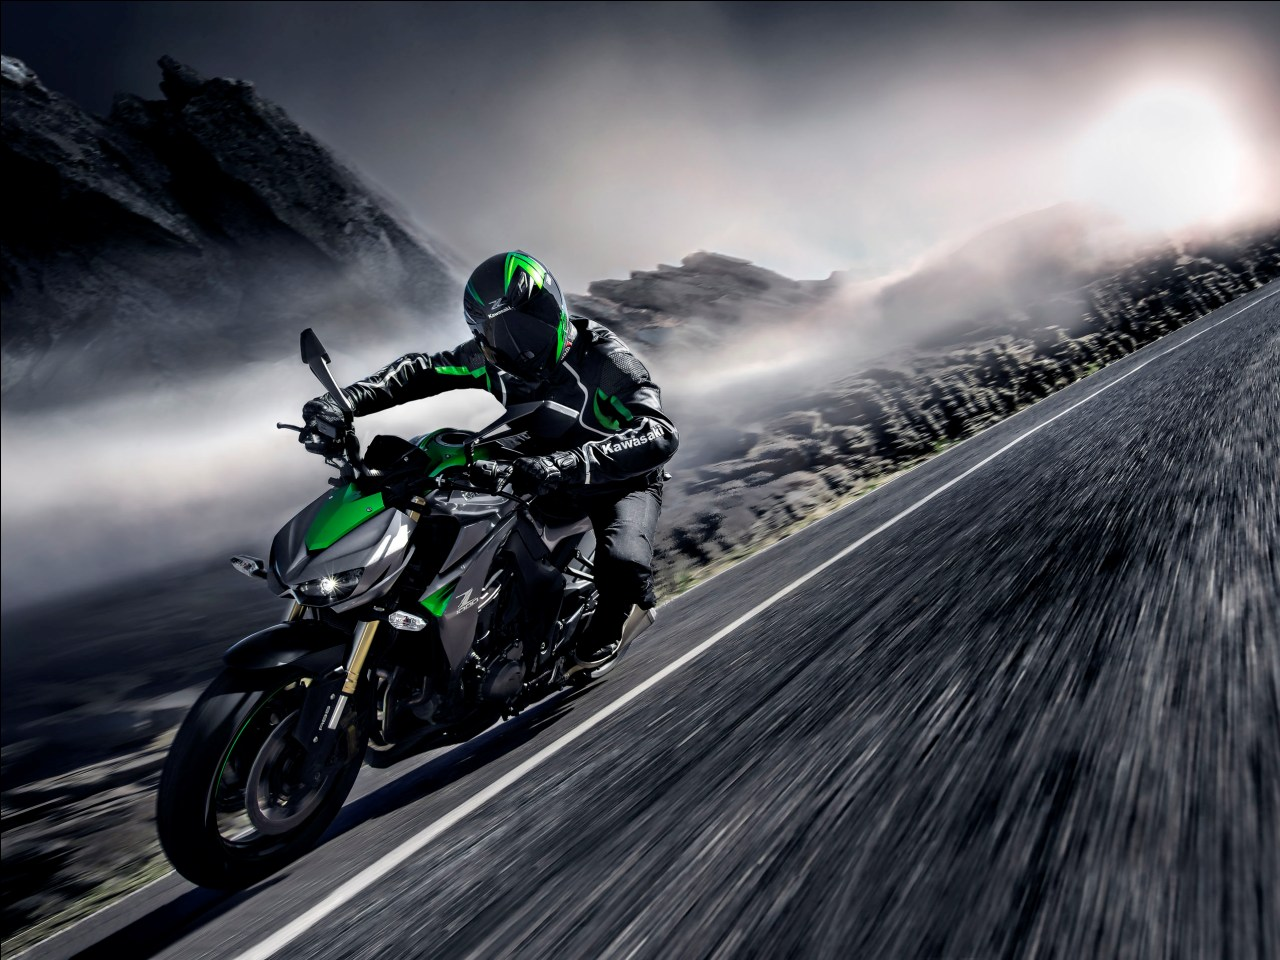 Kawasaki aims to sell 350 units this year